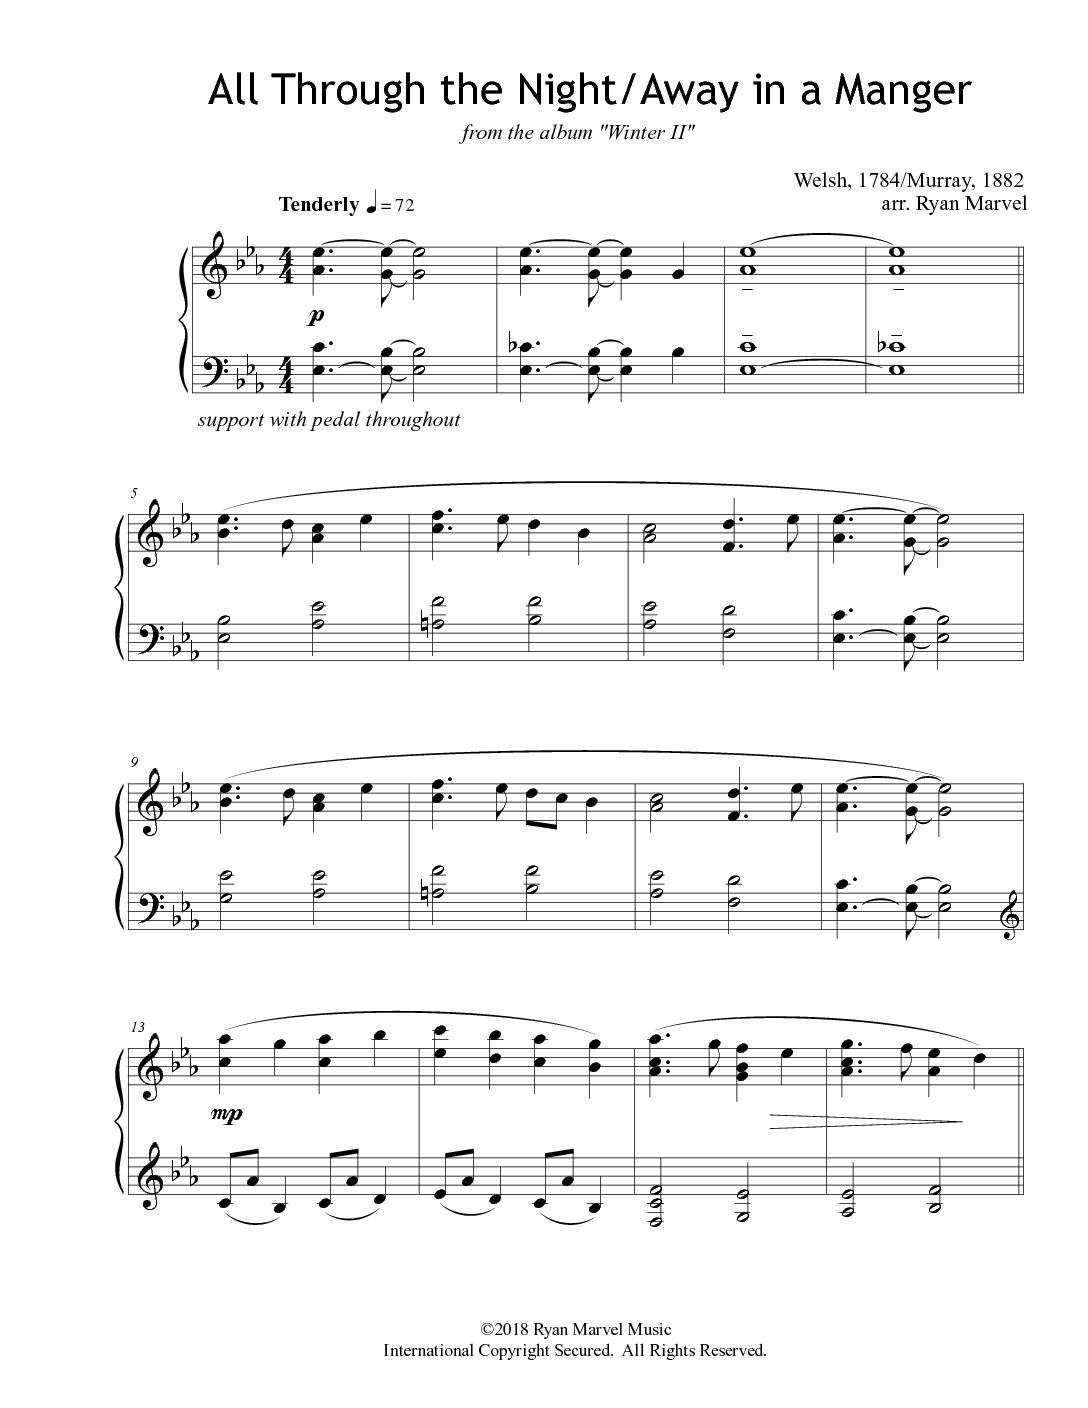 Holiday Sheet Music – Downloads – Ryan Marvel